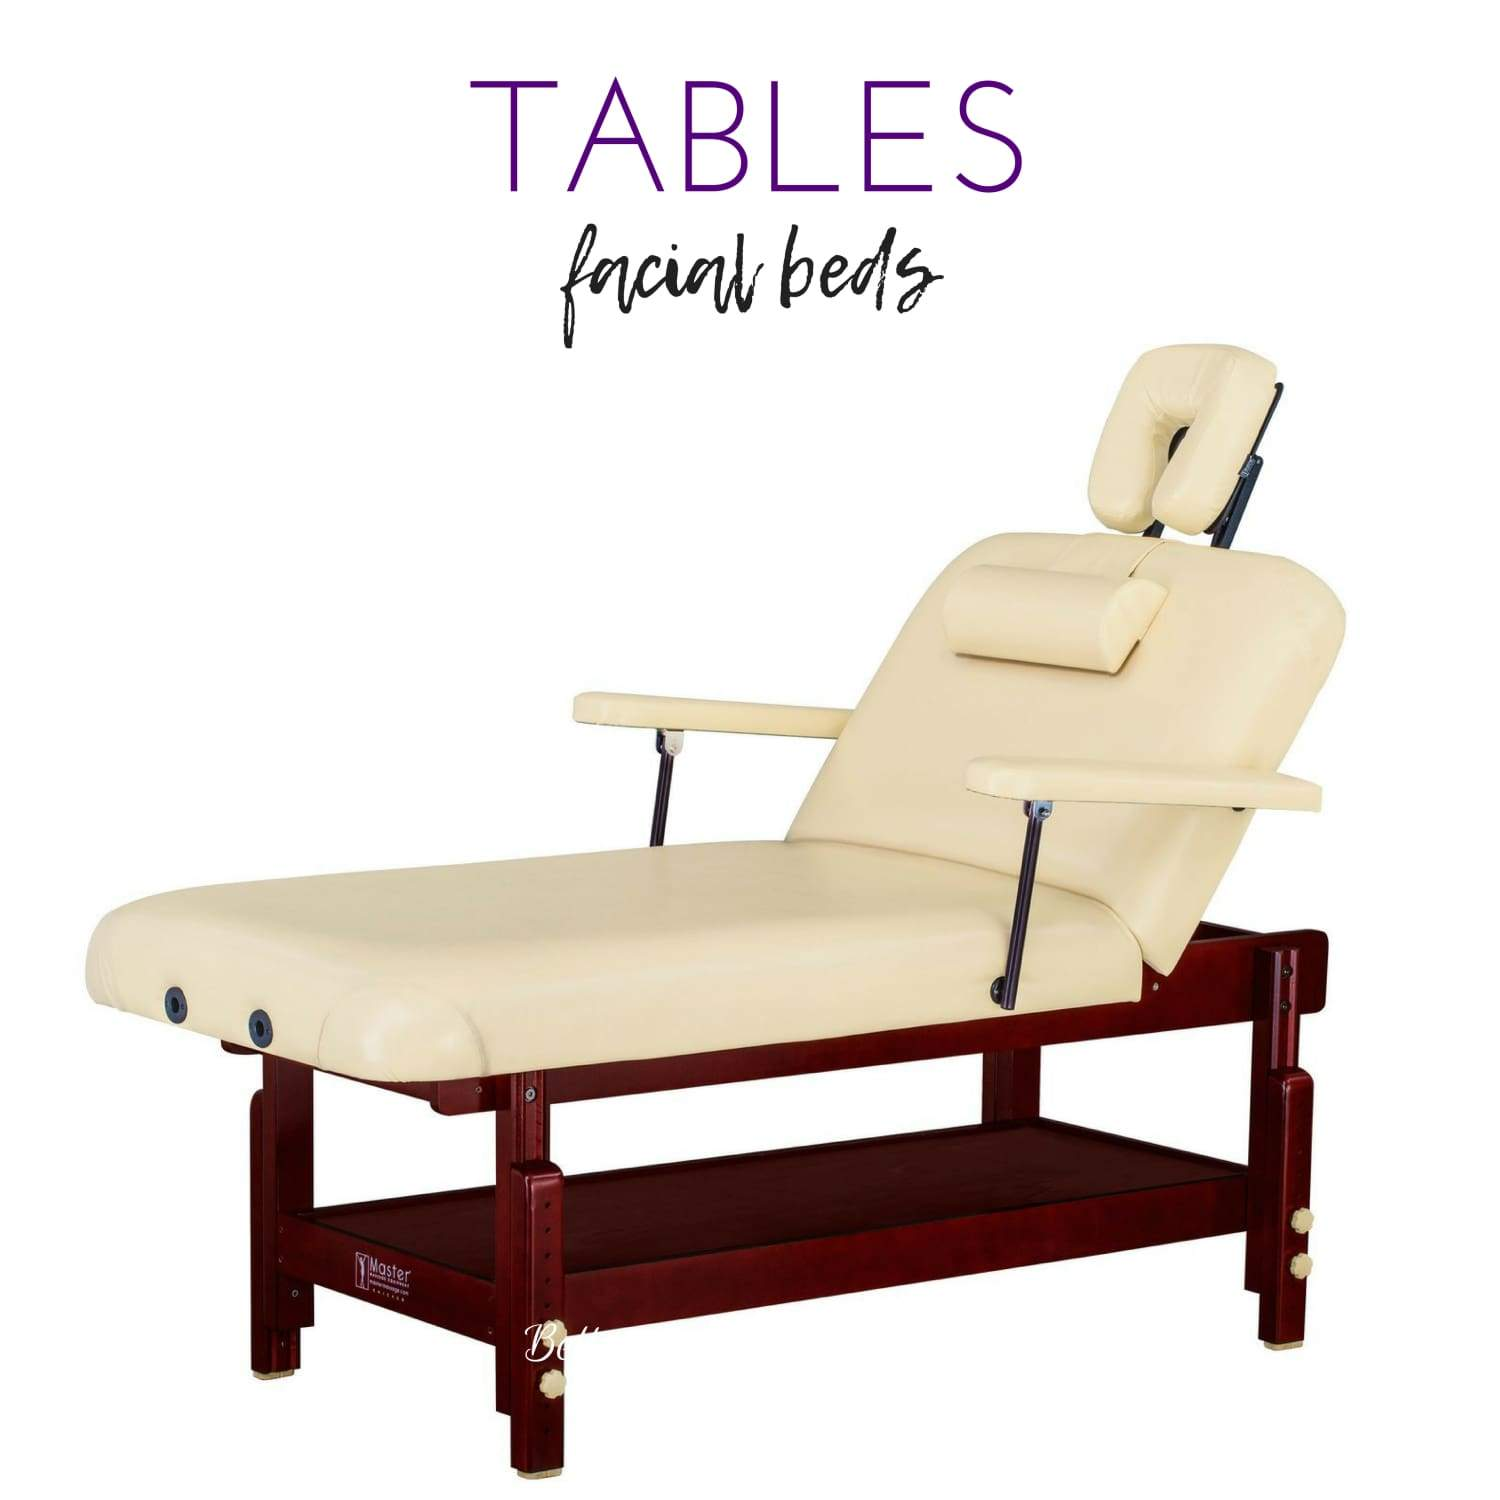 Portable tables, facial tables, portable chairs